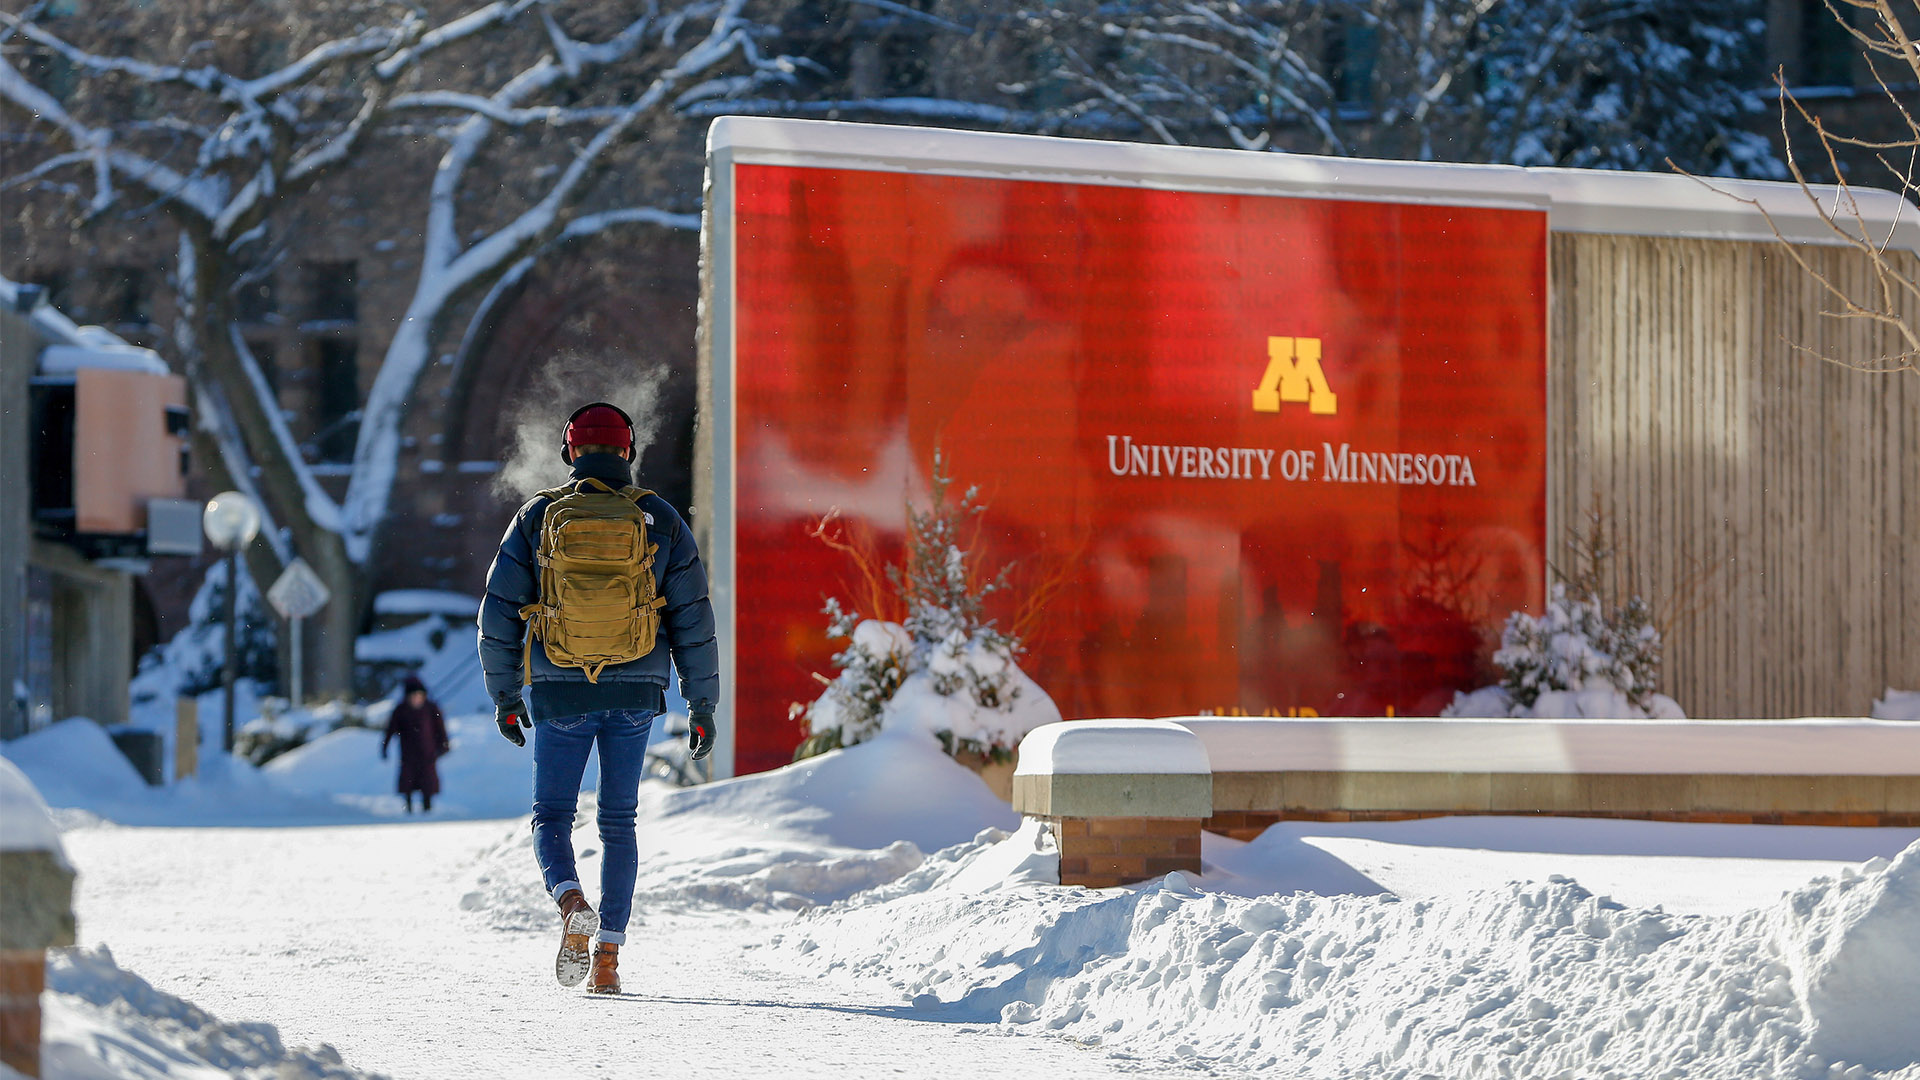 A student walks past a U of M sign on a snowy campus